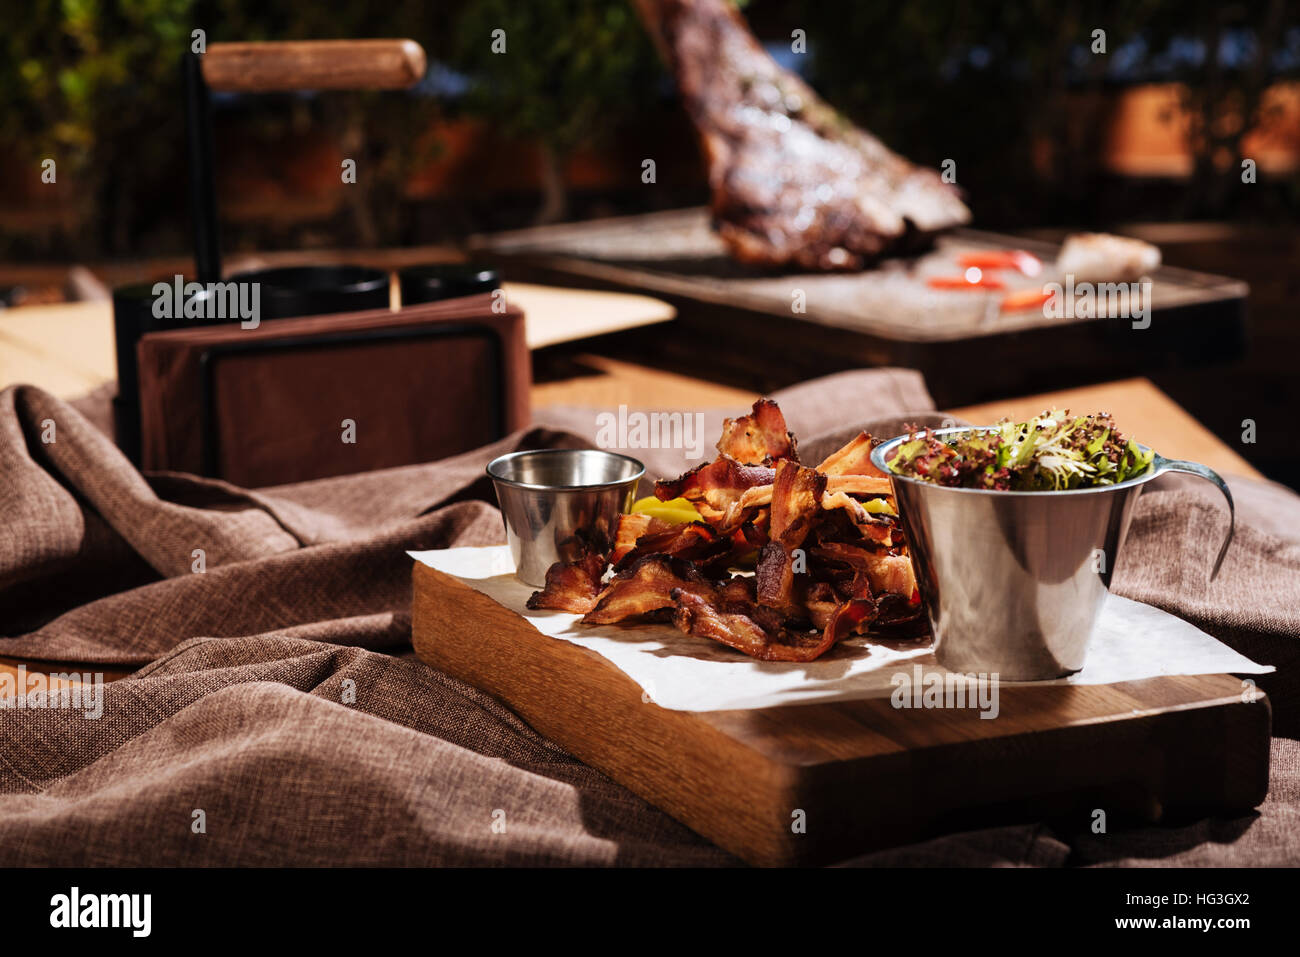 Bacon and salad standing in restaurant room - Stock Image